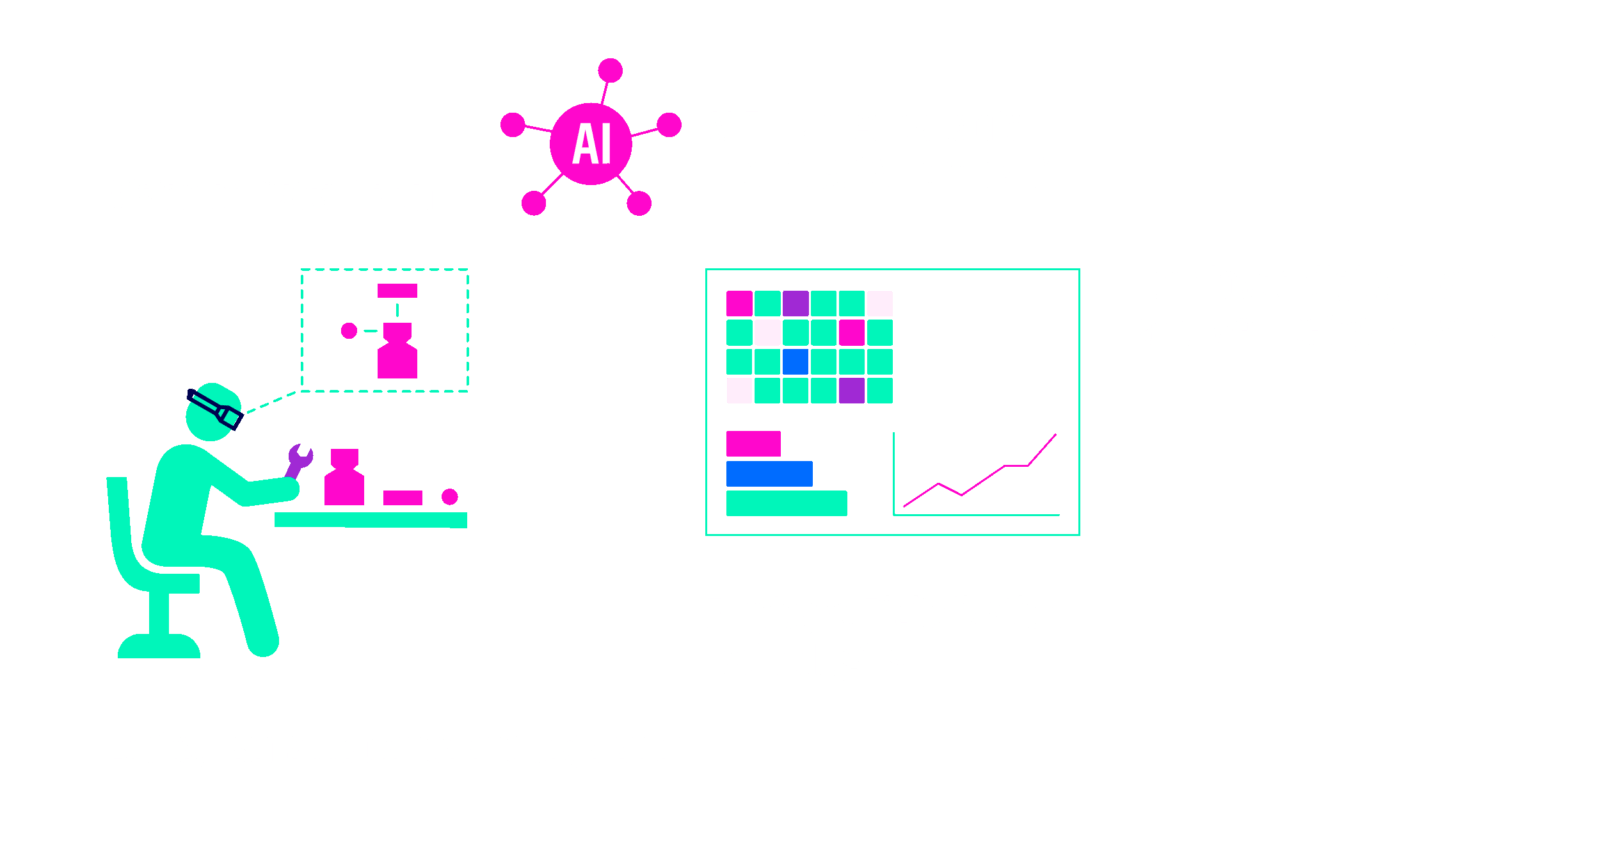 Labor at digital work environment focus areas